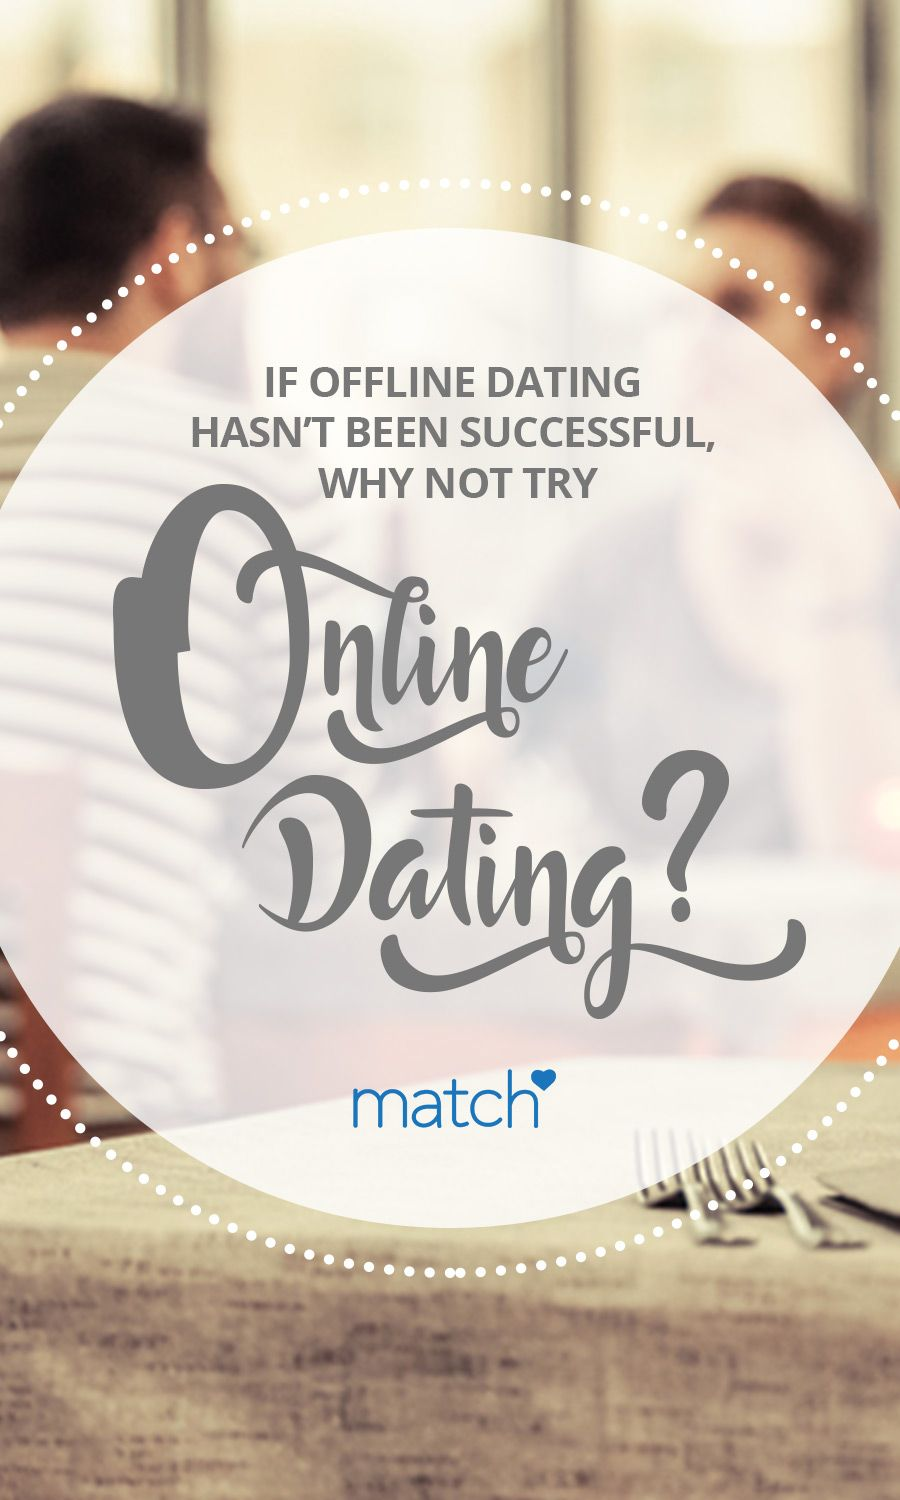 think, dating with destiny jeffrey rachmat that interrupt you